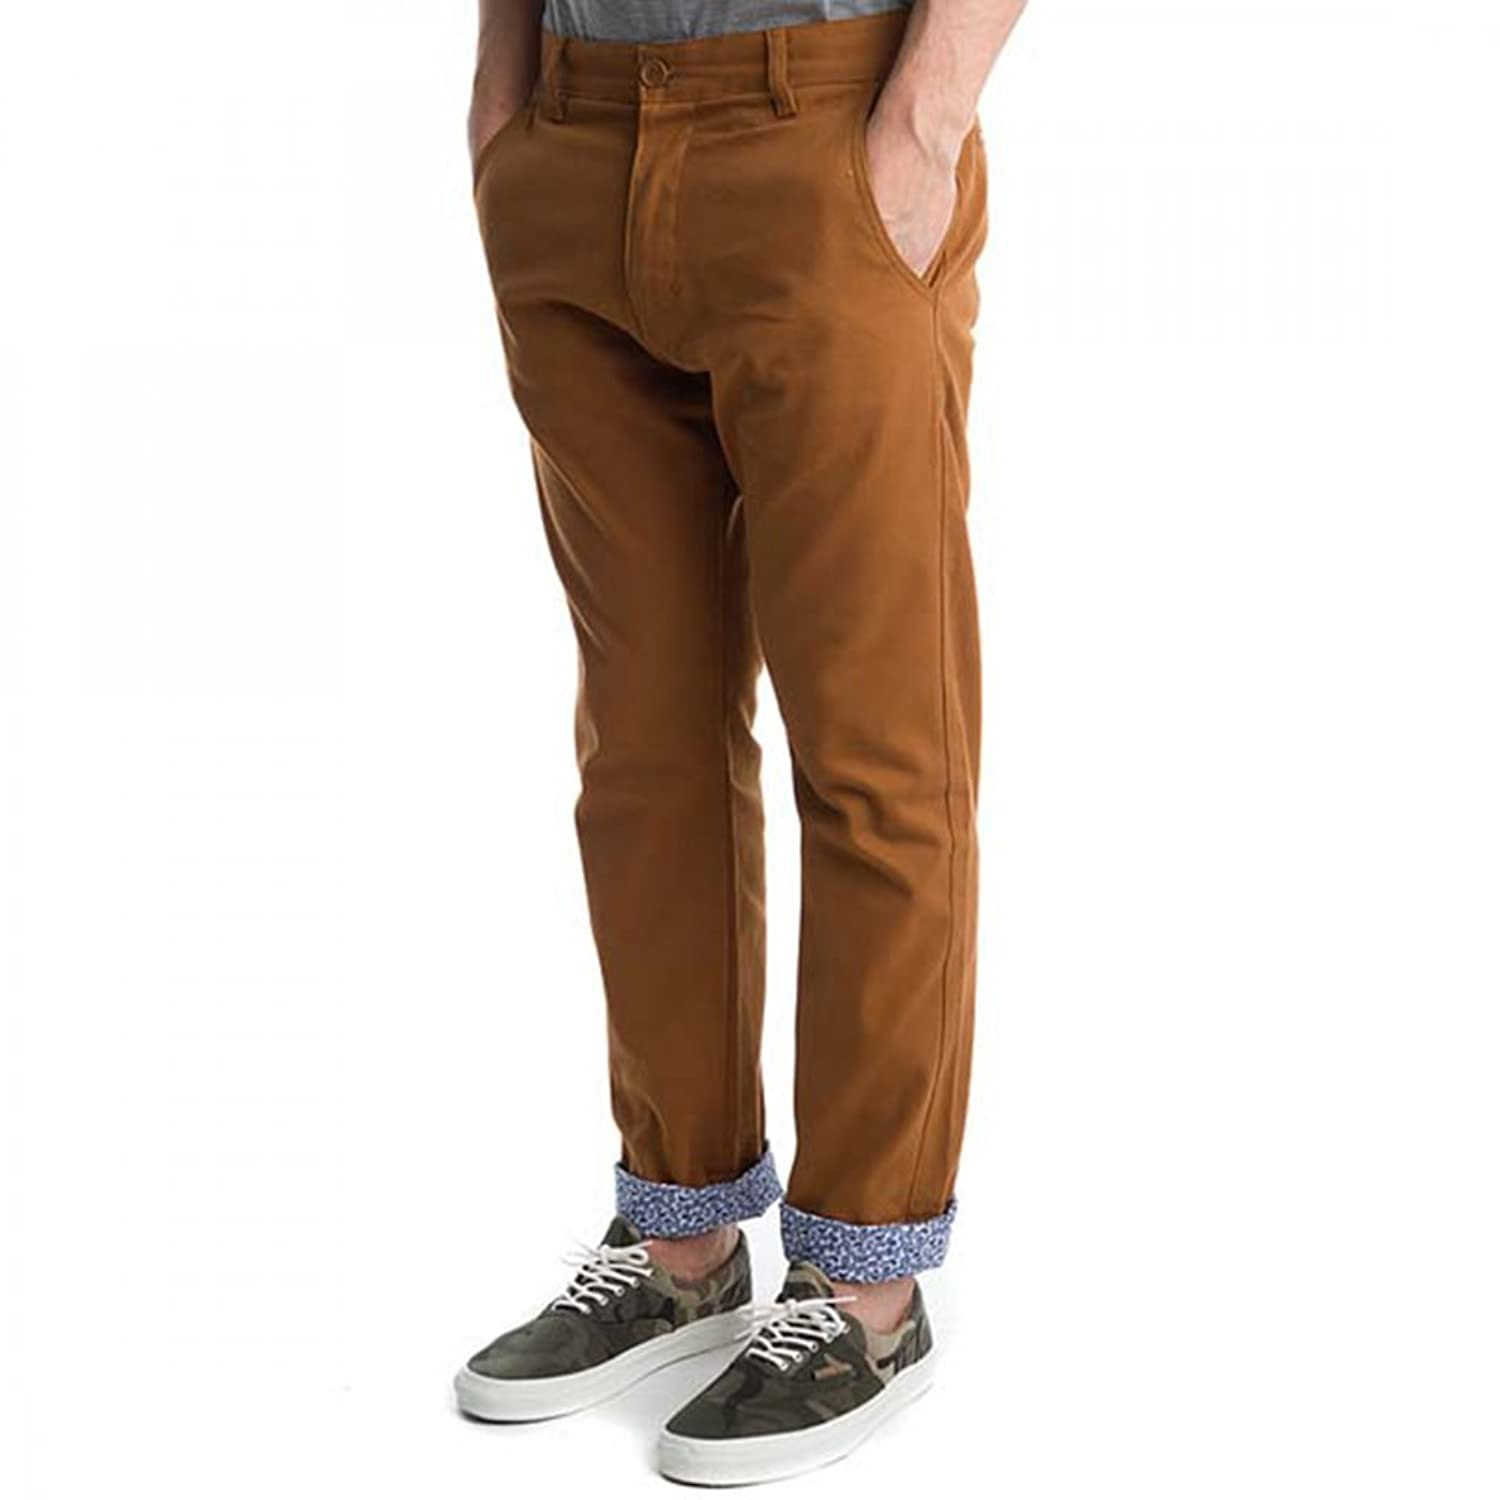 Turbokolor Premium Slim Chino Pant - Brown